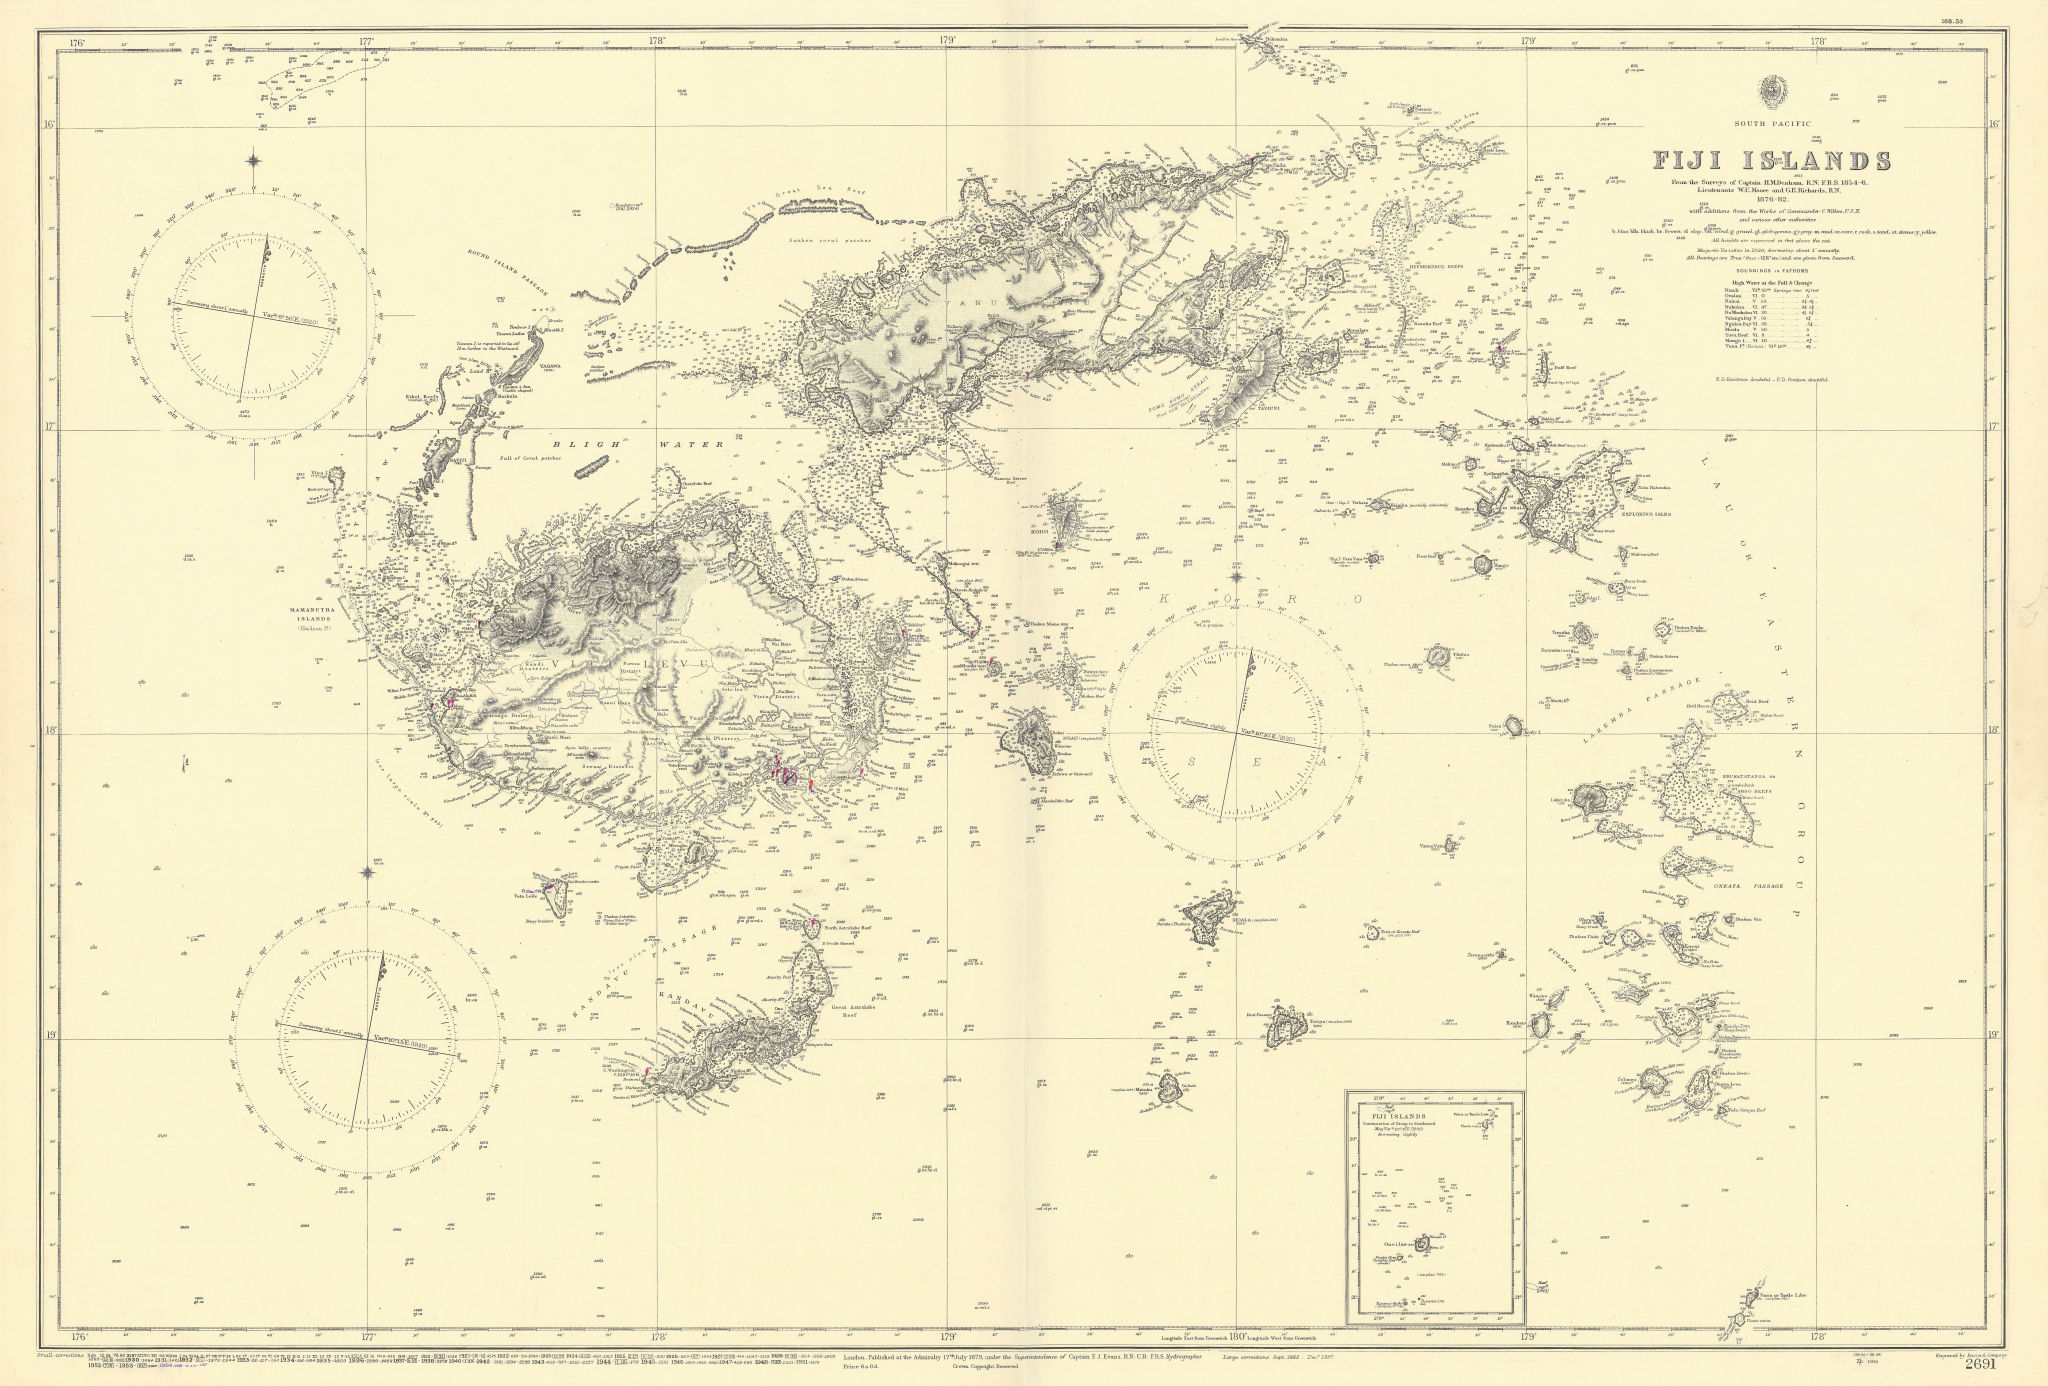 Fiji Islands, South Pacific. ADMIRALTY sea chart 1879 (1954) old vintage map